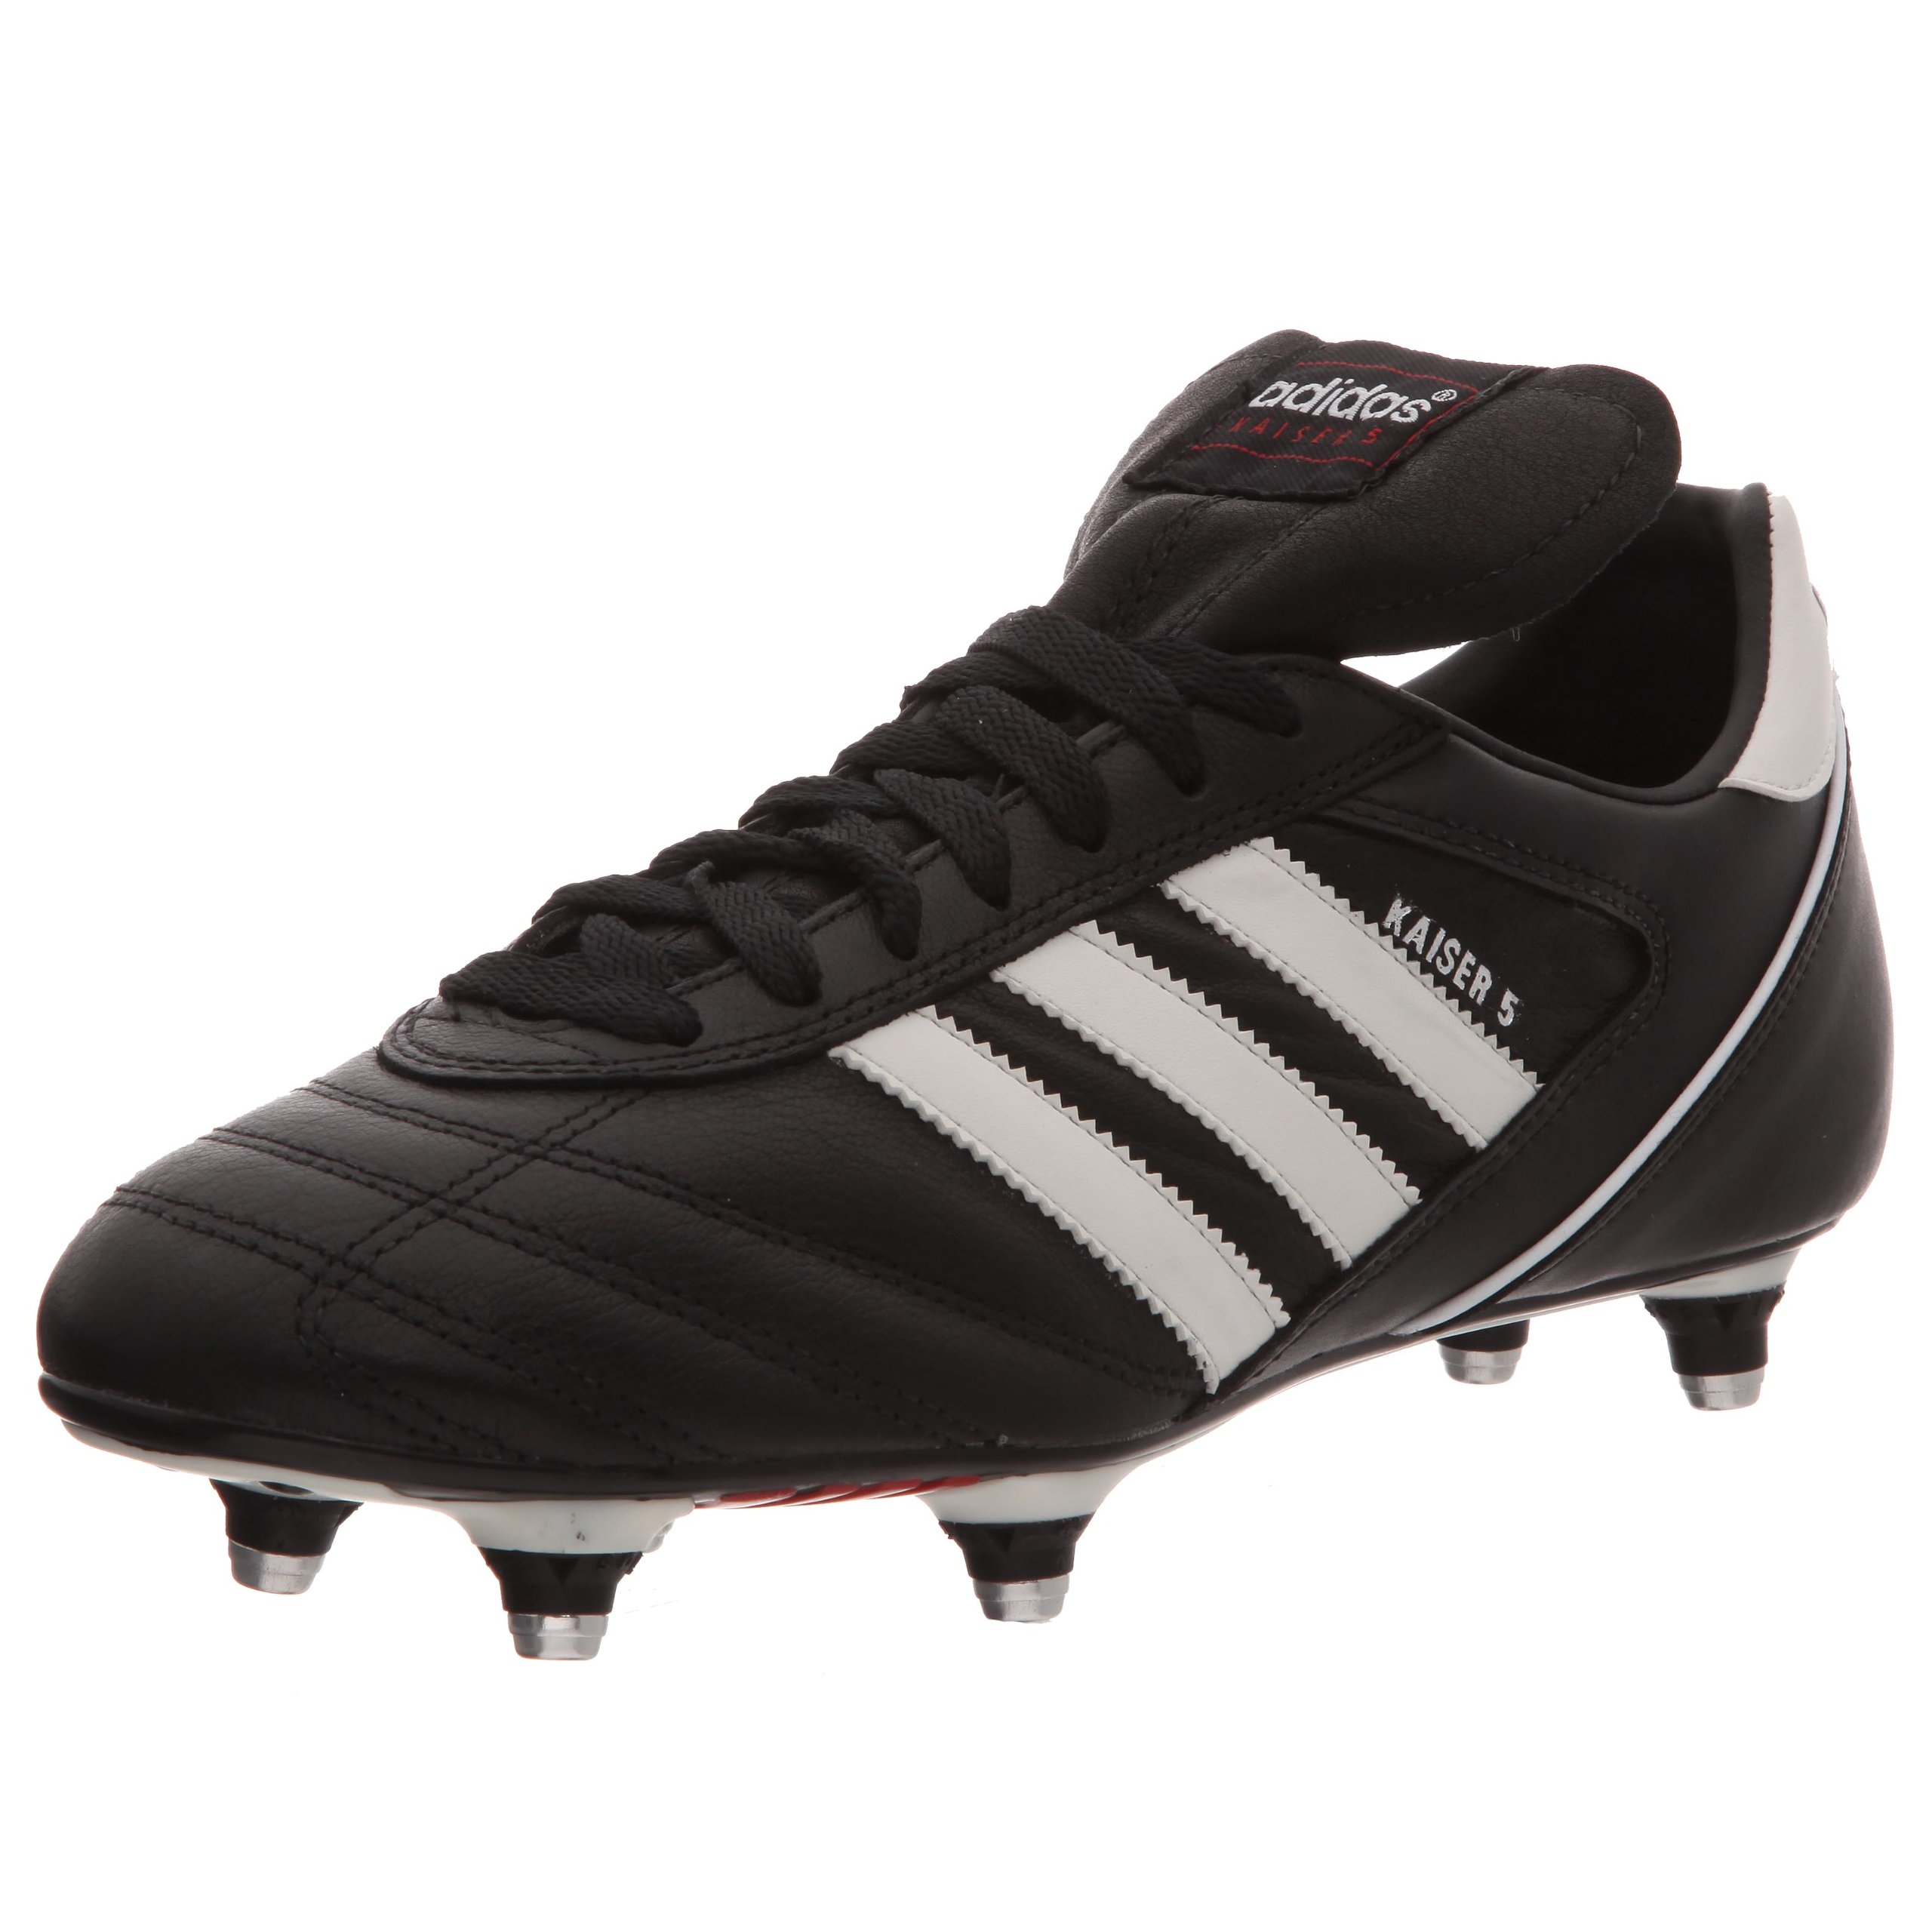 aef33c984 Best Rated in Men's Football Boots & Helpful Customer Reviews ...